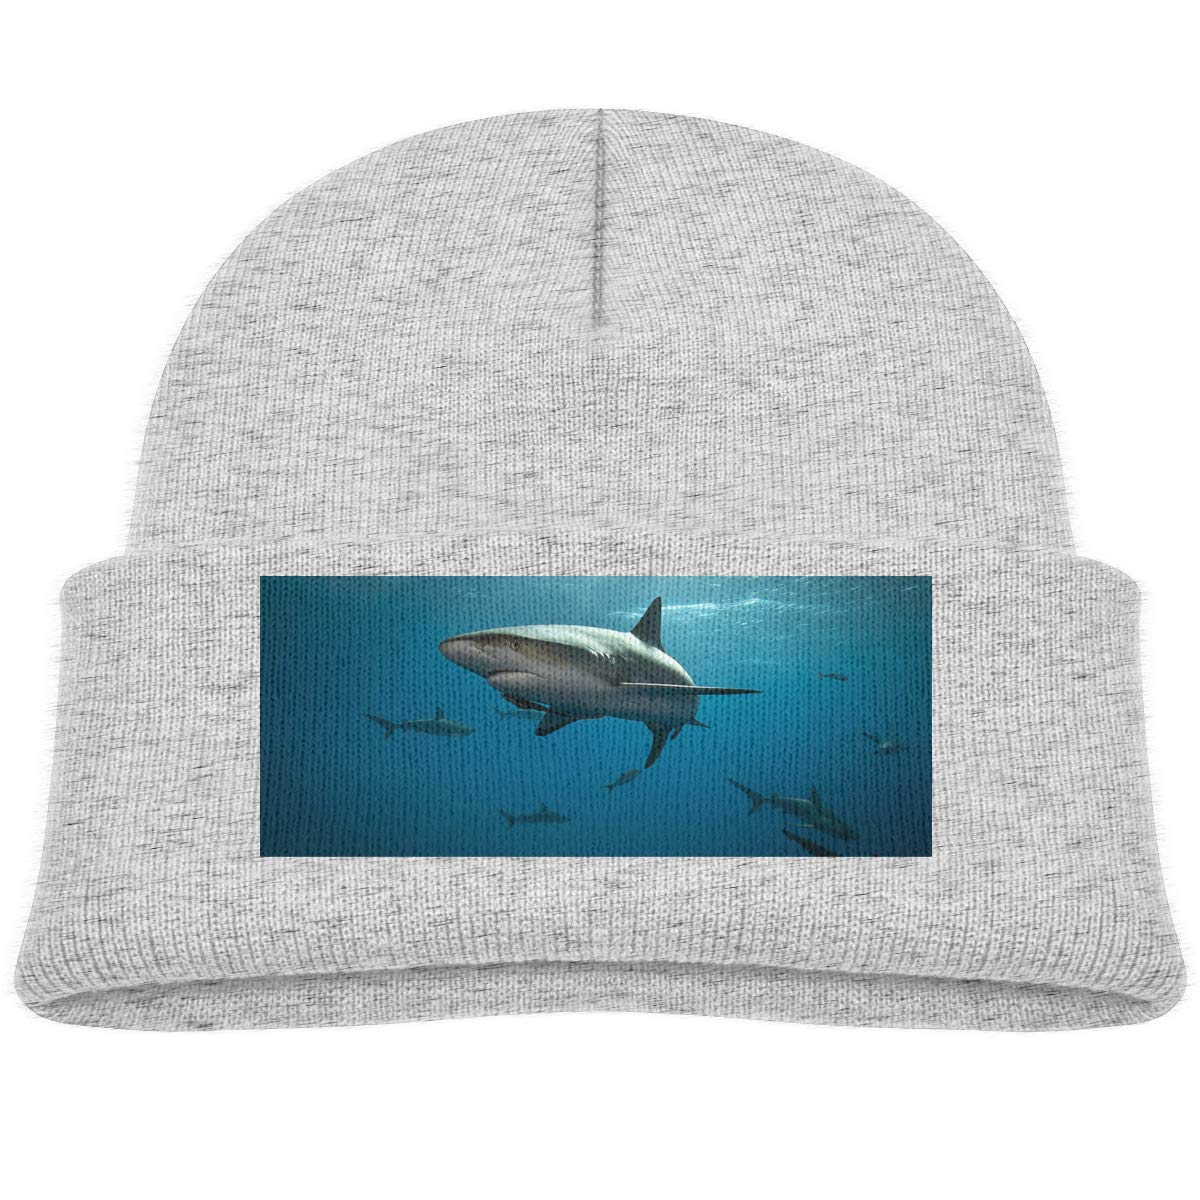 Kids Knitted Beanies Hat Shark Winter Hat Knitted Skull Cap for Boys Girls Black kidhome